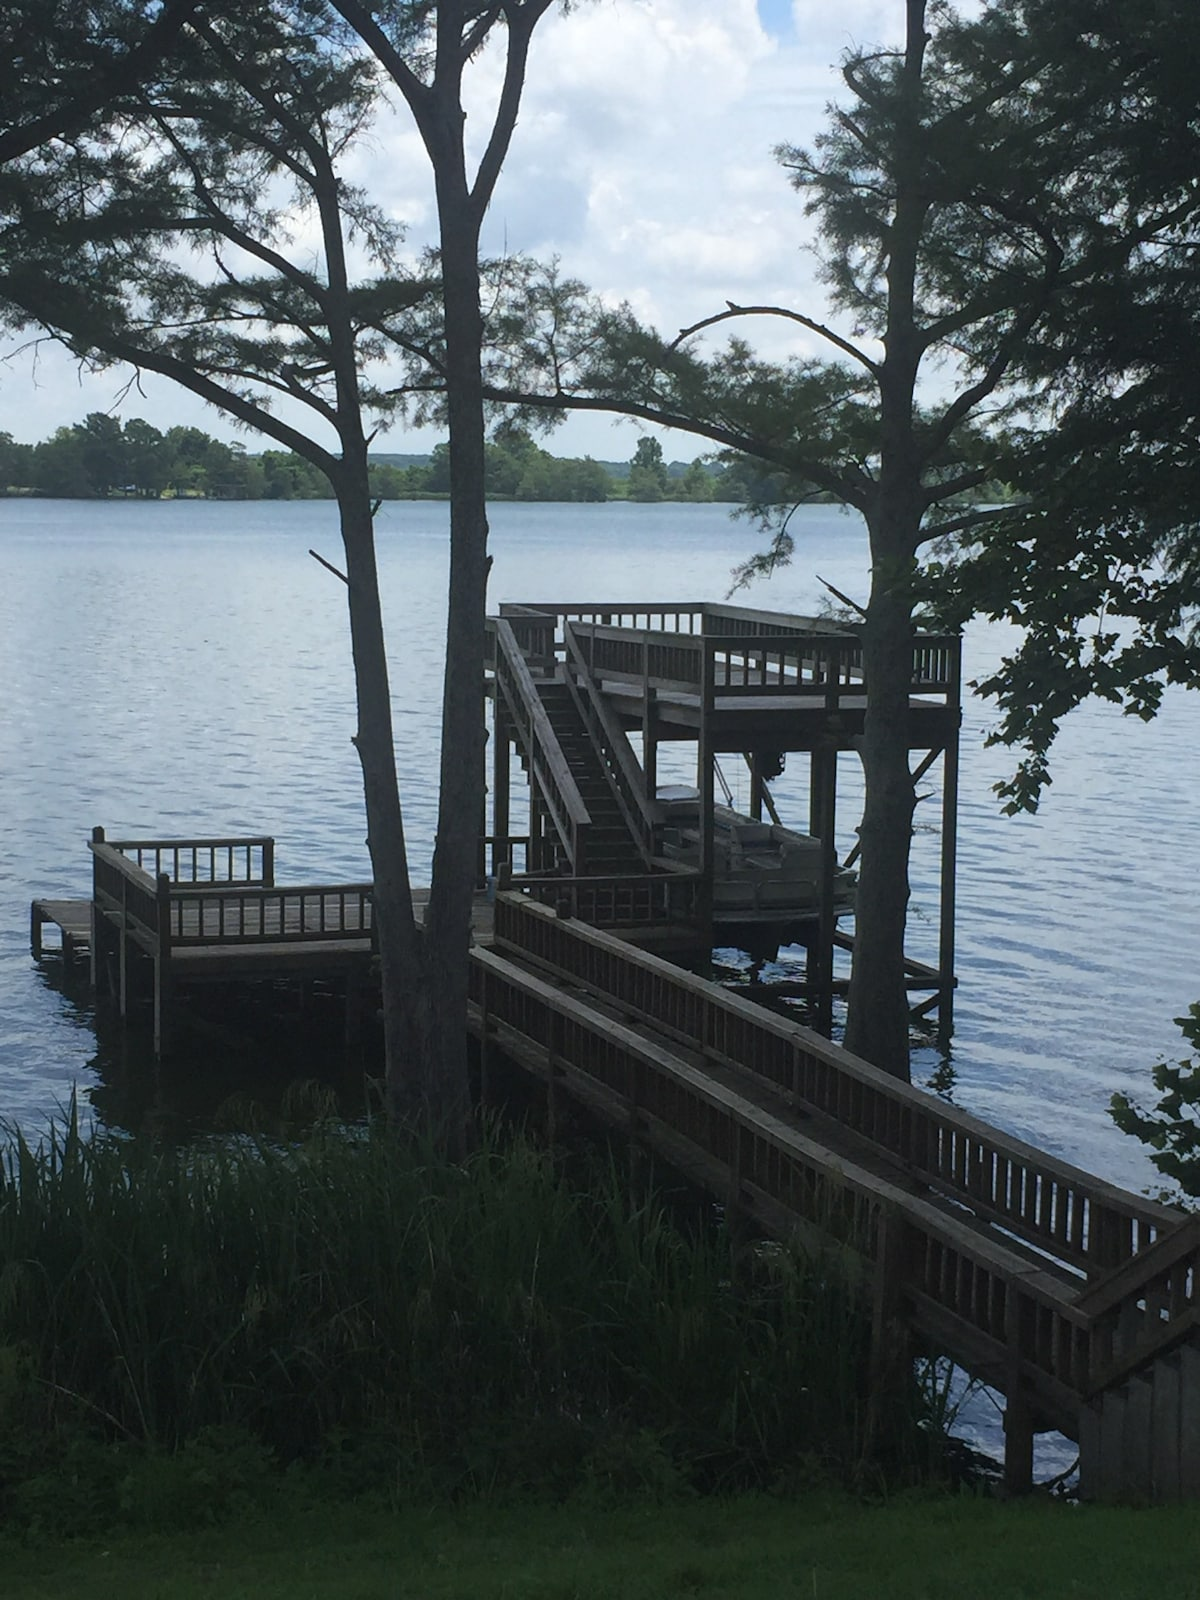 Superbe Glen Allan 2018 (with Photos): Top 20 Glen Allan Vacation Rentals, Vacation  Homes U0026 Condo Rentals   Airbnb Glen Allan, Mississippi, United States: Lake  ...